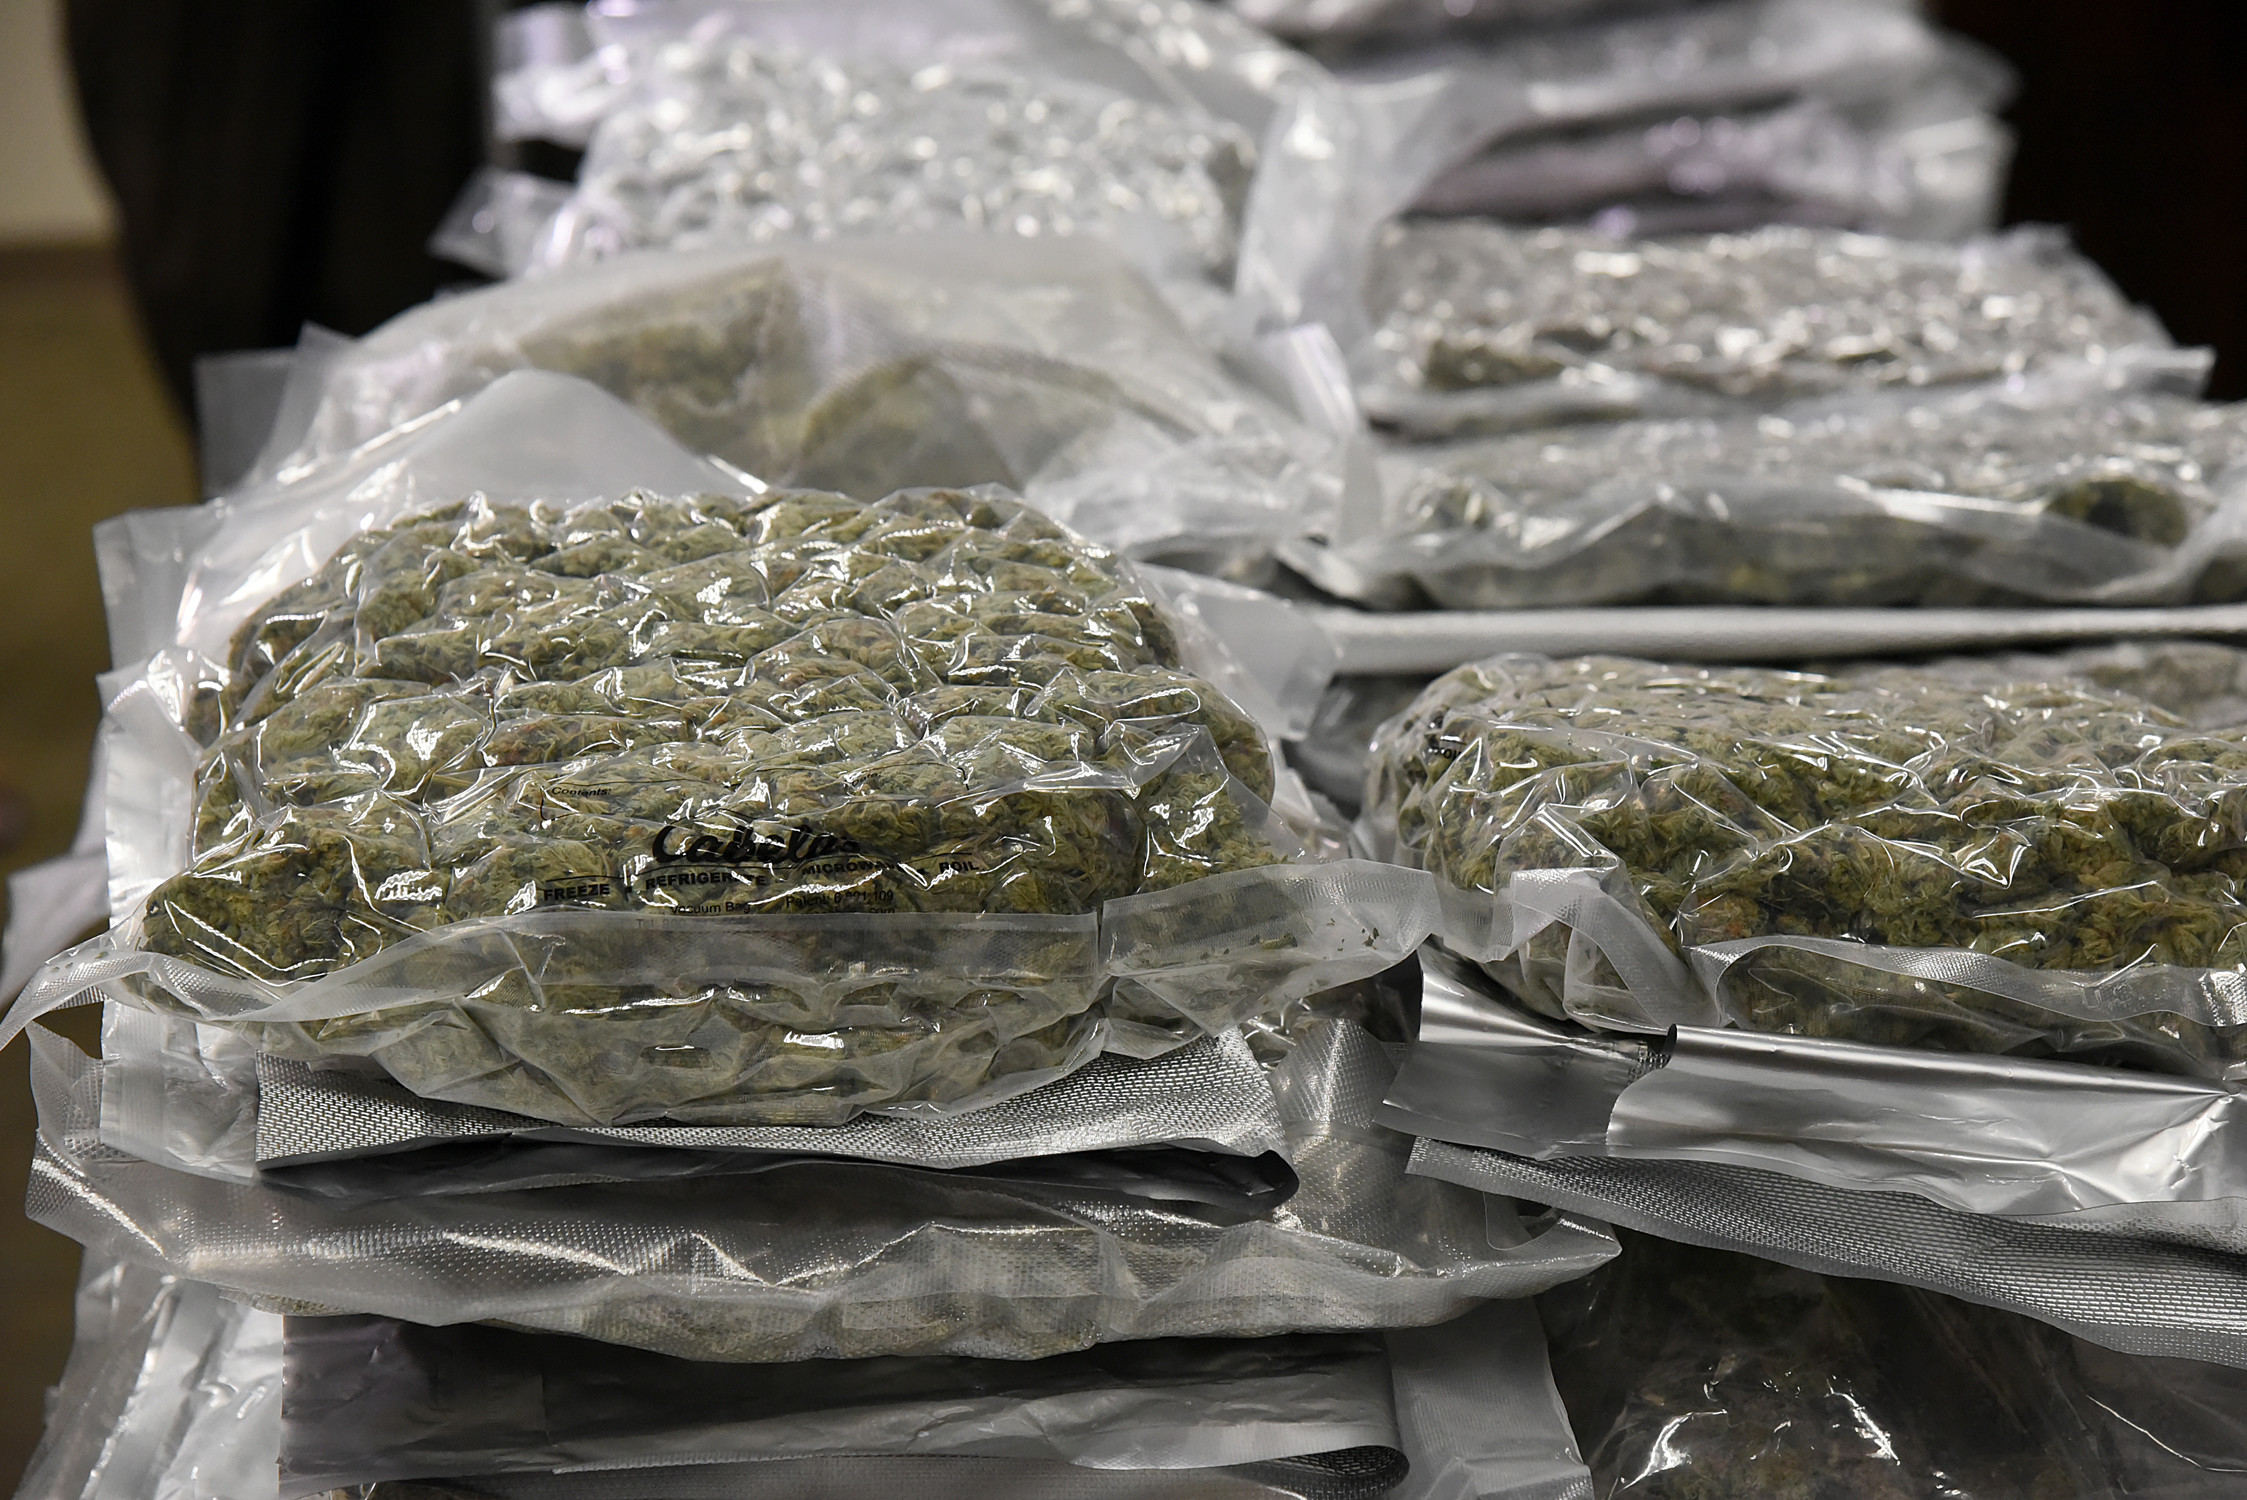 60 Pounds Of Pot Seized The Sumter Item